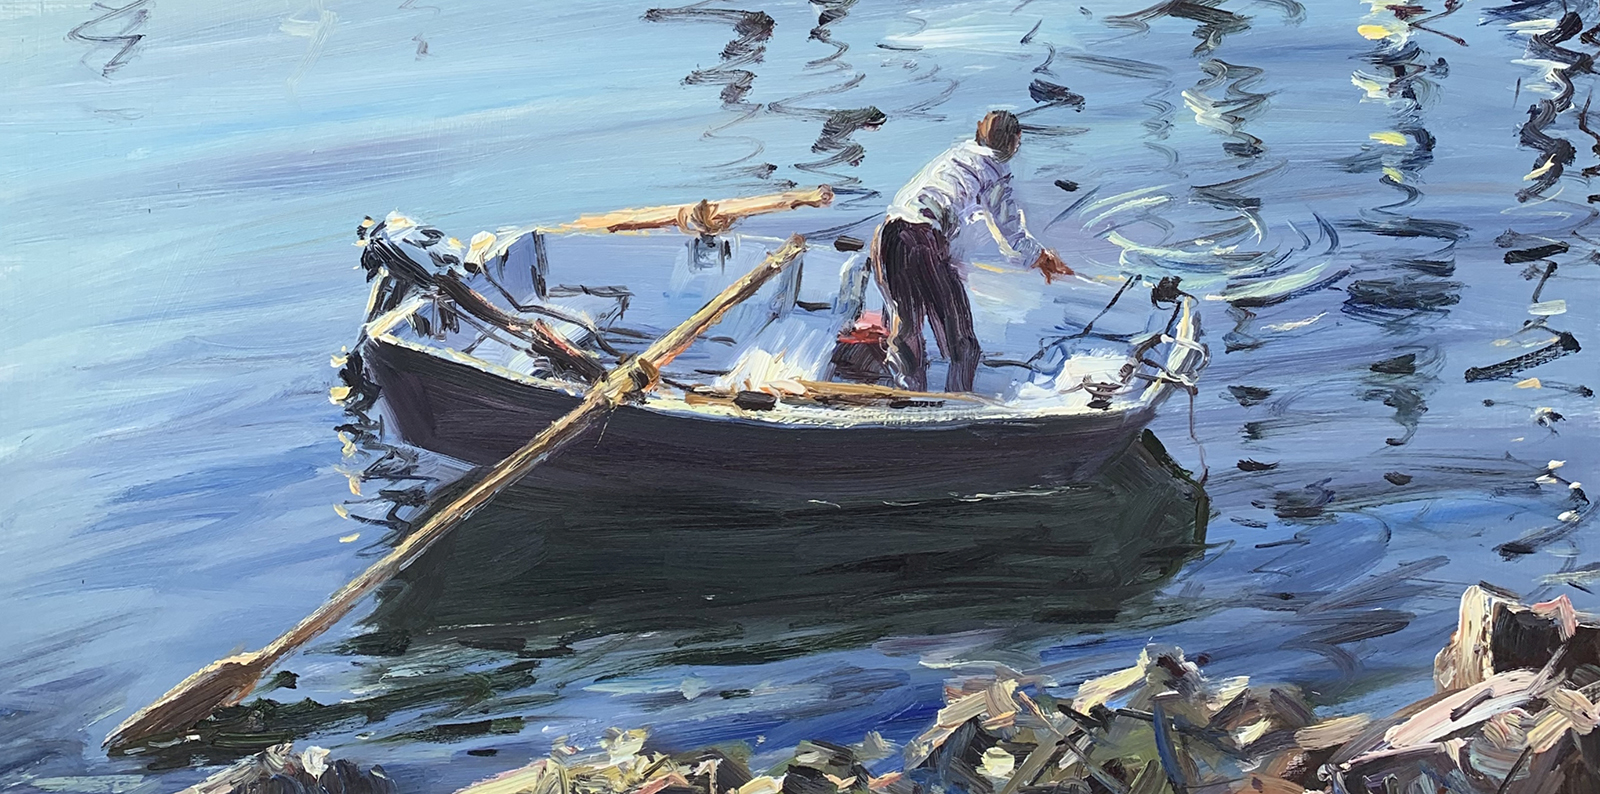 Paintings by Master Impressionist Daniel J. Izzard